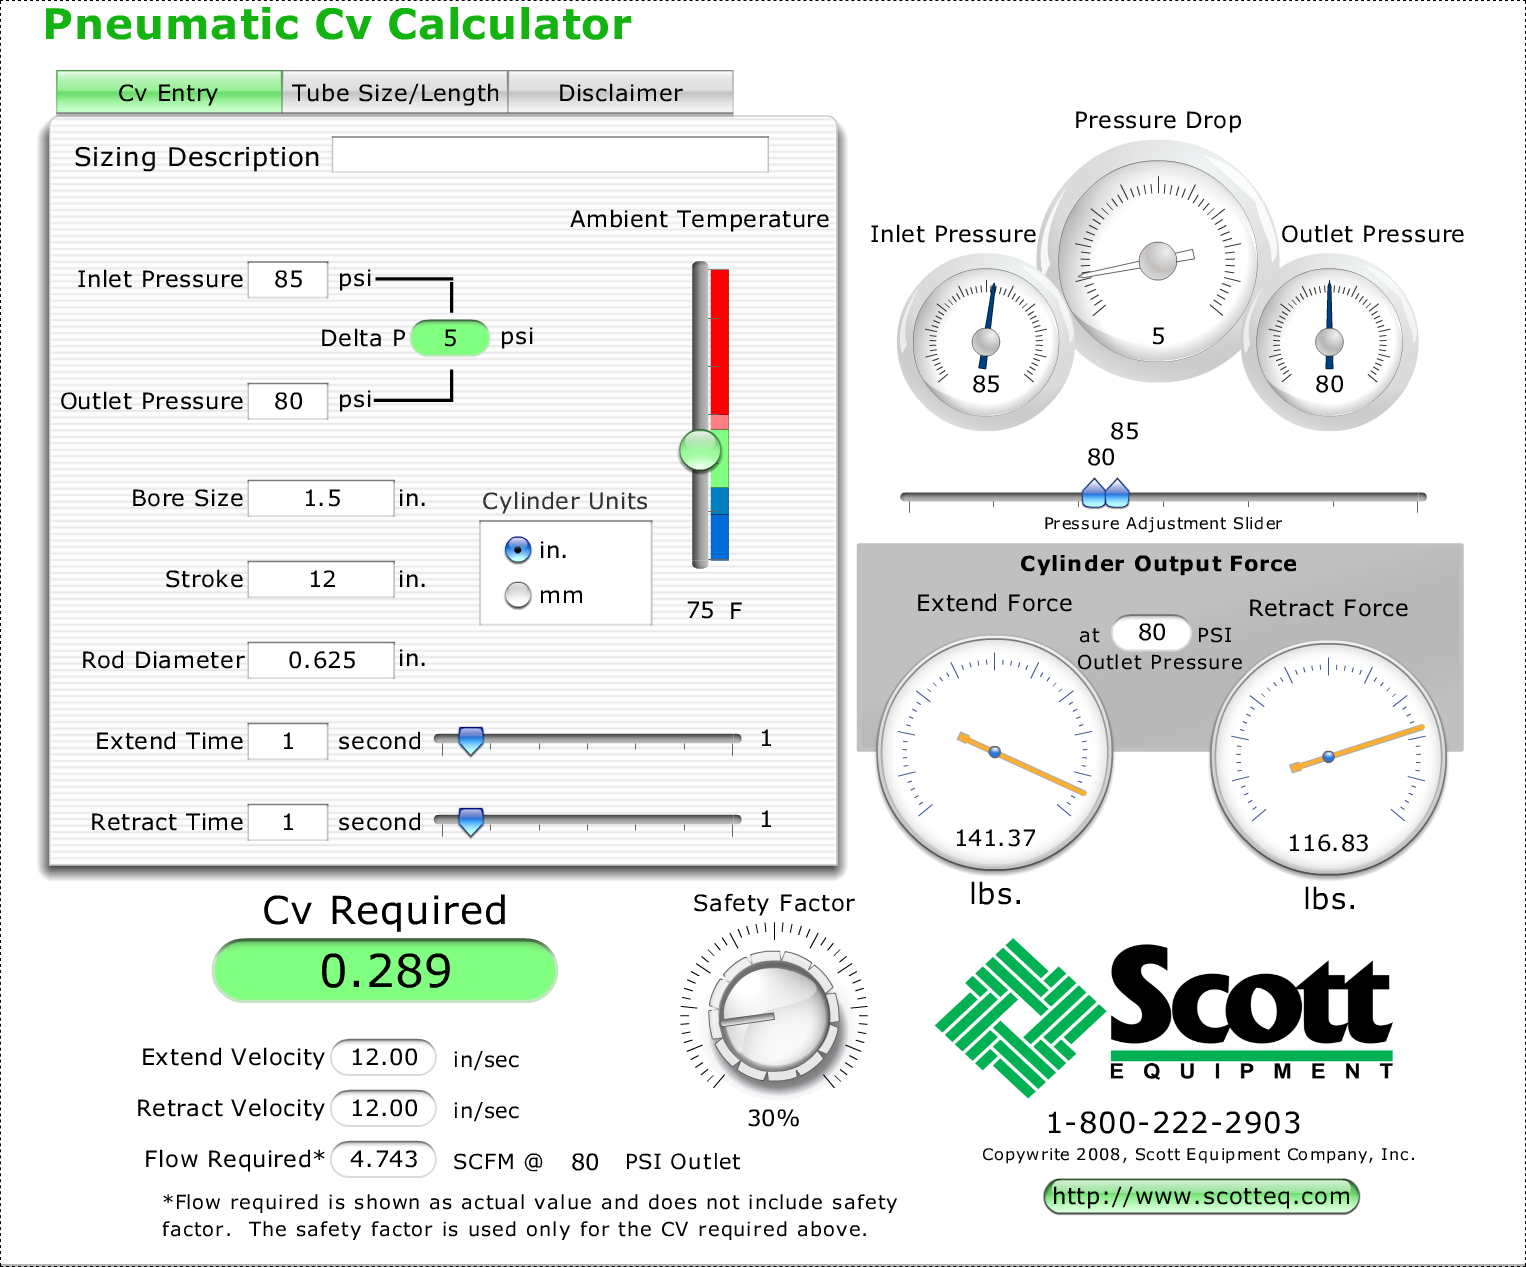 Scott Equipment Company Cv Calculator